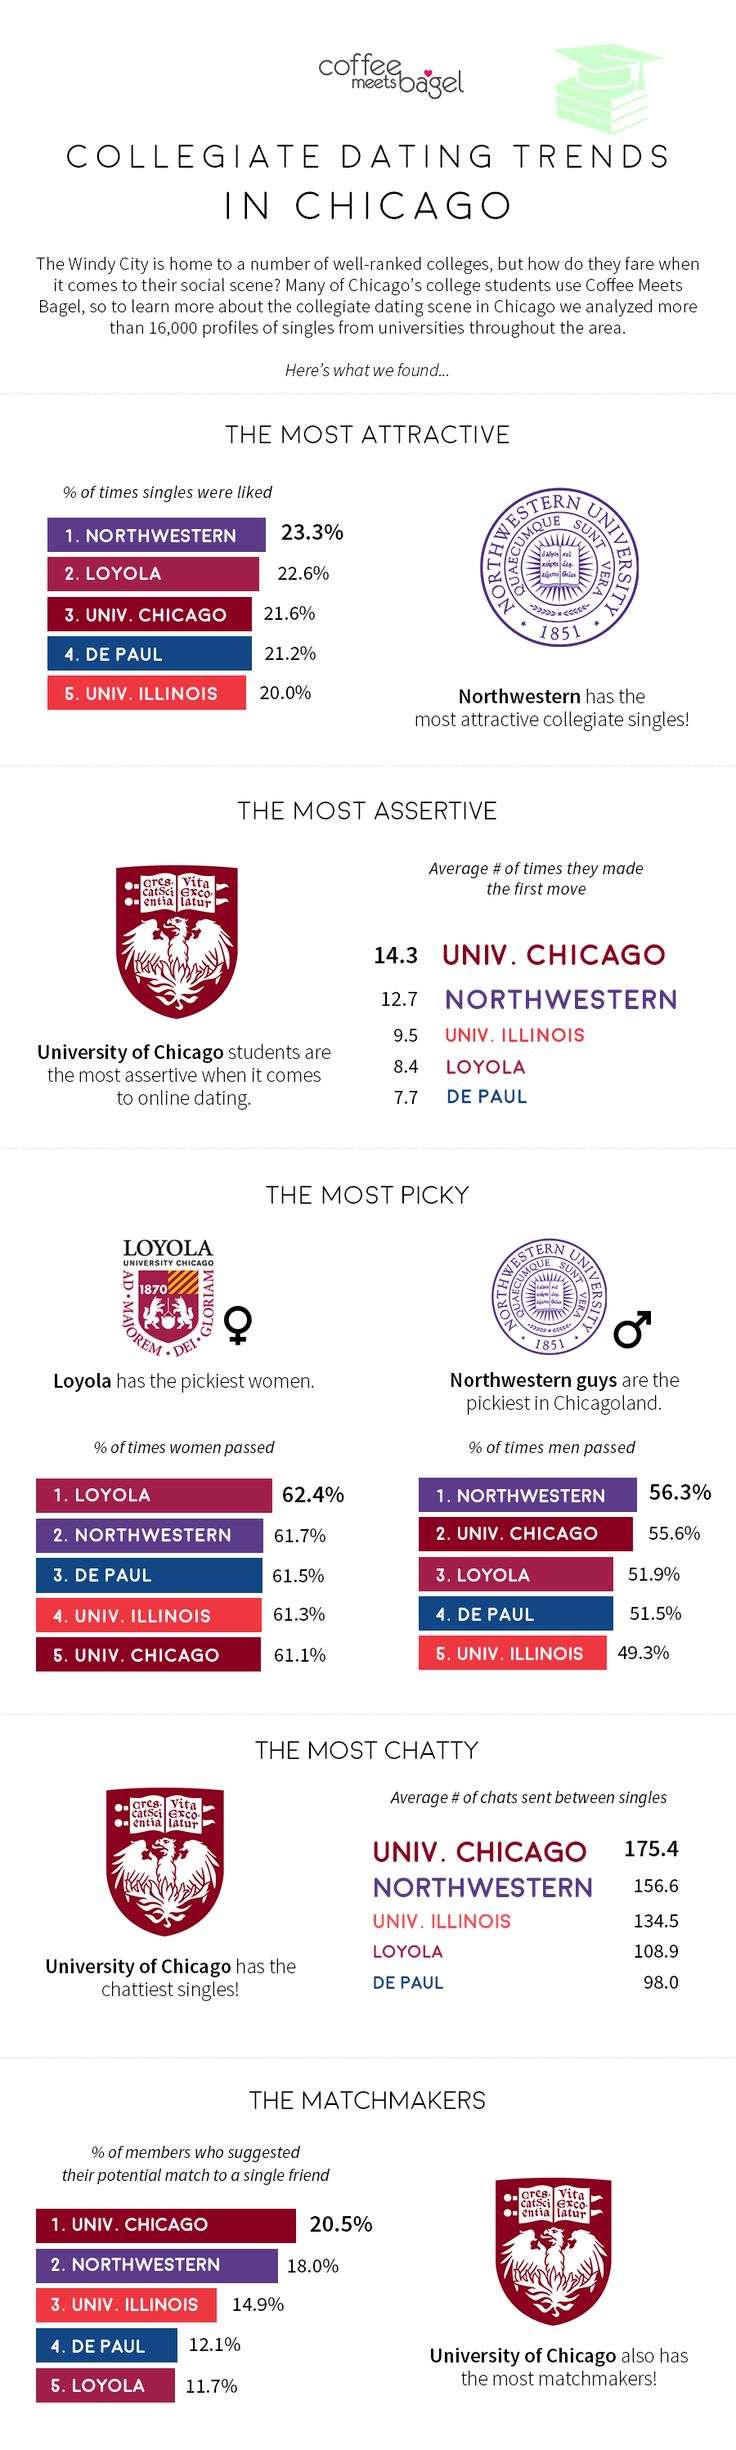 What's the dating scene like in Chicago? Check out the top universities for dating in our CMB college dating poll